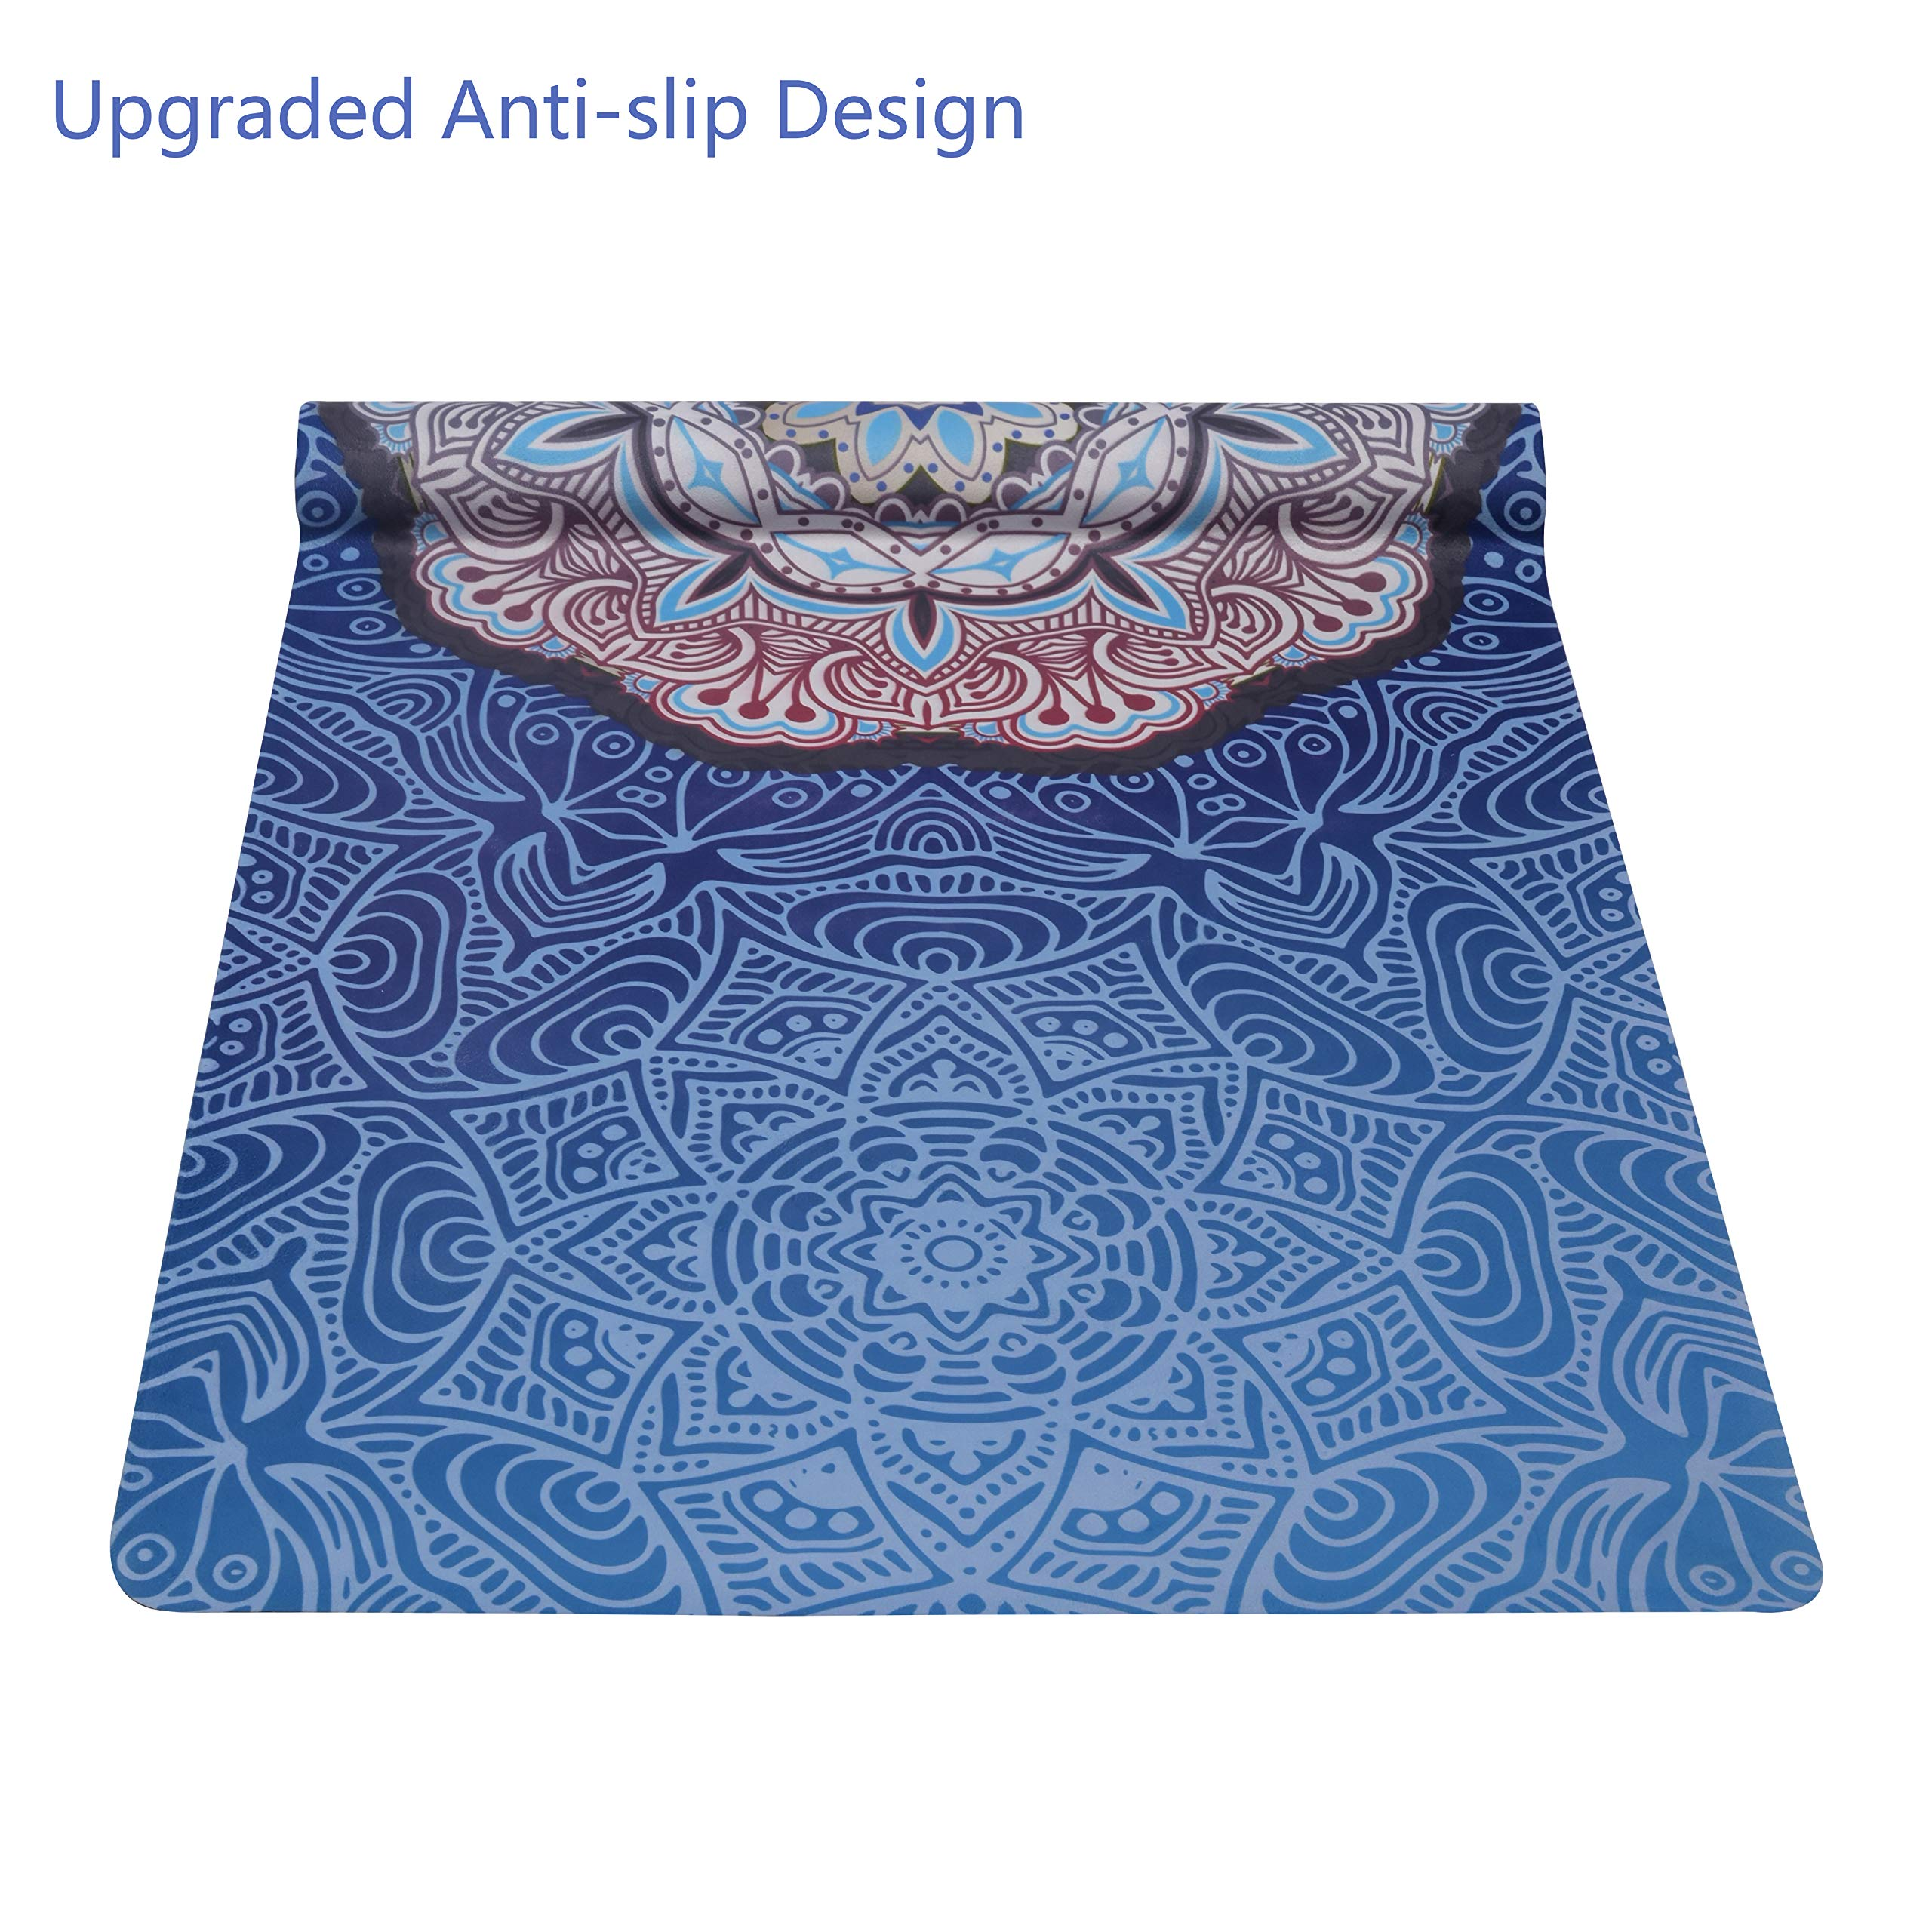 OPLIY Yoga Mat with Yoga Strap,Foldable Yoga Mat 1//16 Inch Thick Non-Slip Yoga Exercise Mat Sweat Absorbent High-Grade Natural Suede for Travel,Coming with Carrying Bag